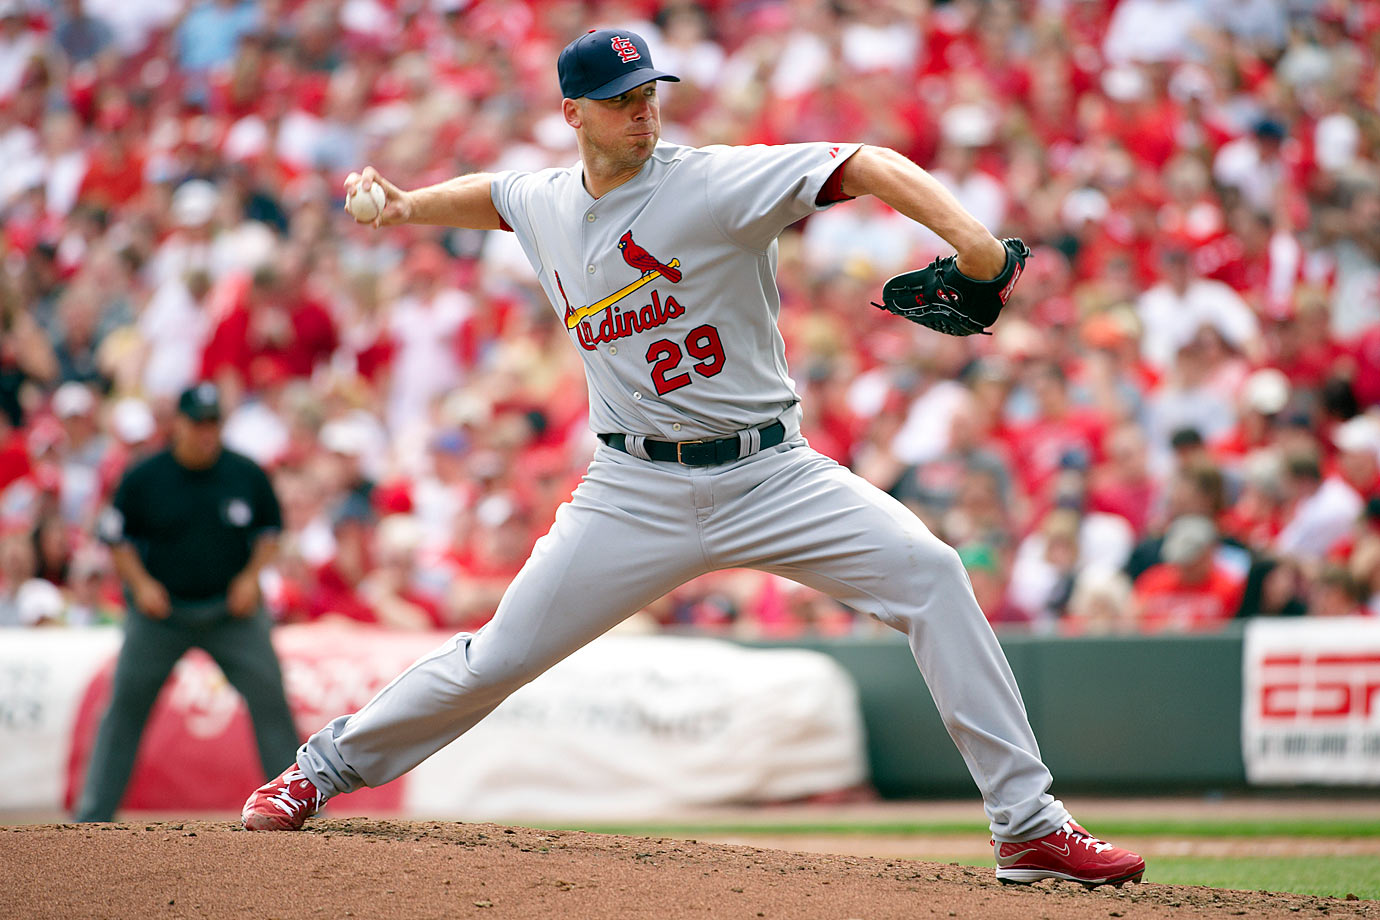 Carpenter won the 2005 NL Cy Young award after overcoming a serious shoulder injury that nearly ended his career. He was forced to miss all but five games combined in the 2007 and 2008 seasons because of Tommy John surgery and other ailments. He came back to go 17-4 with a NL-best 2.24 ERA at age 34 in 2009 and finished as the Cy Young runner-up, then went 16-9 with a 3.22 ERA in 2010 while making the All-Star team. He led the league in games started in 2010 and '11.